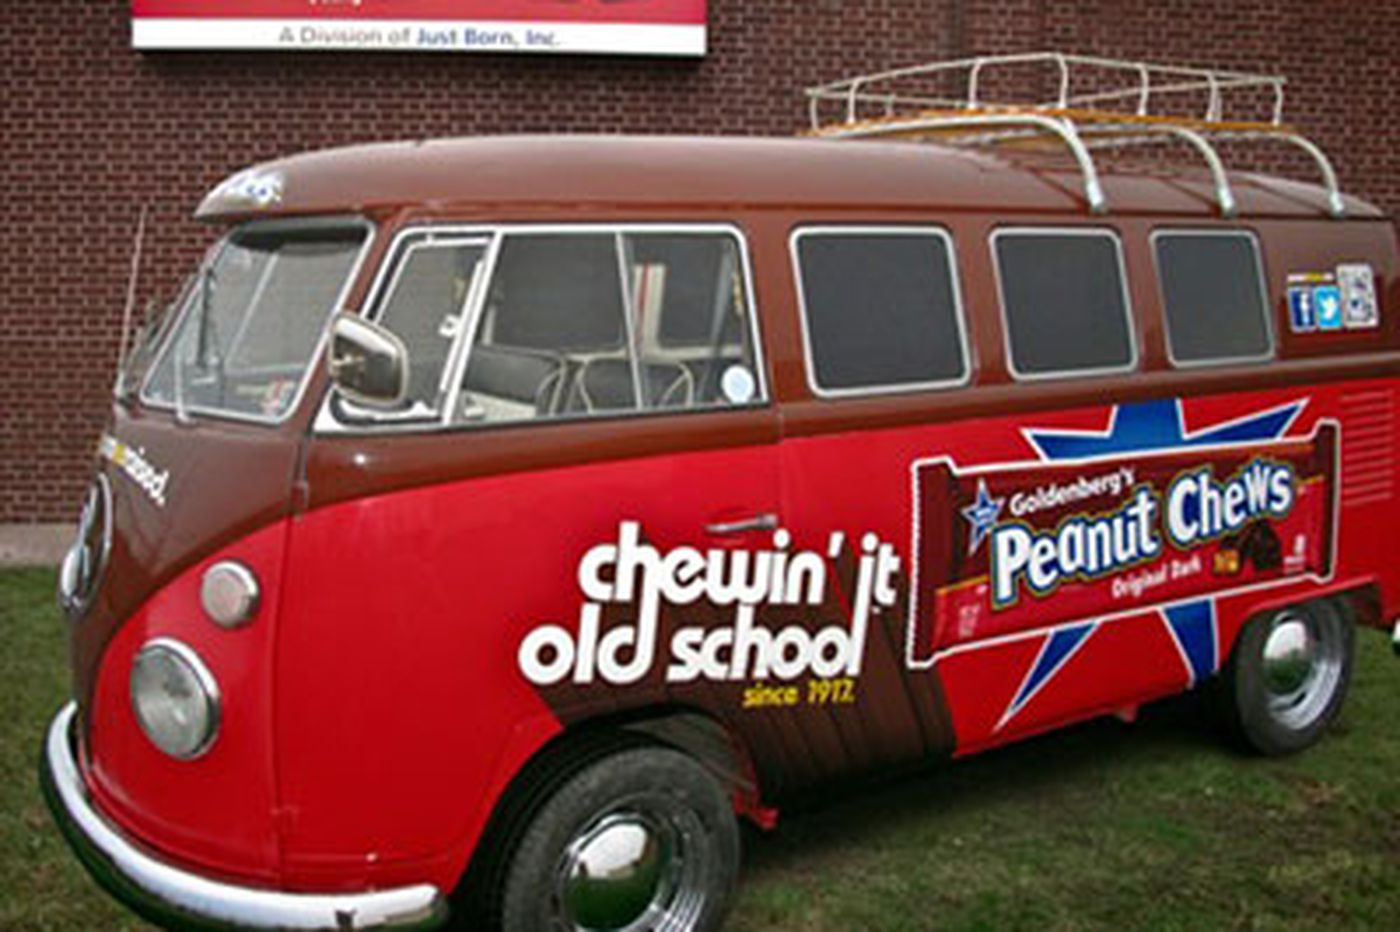 Peanut Chews putting the Goldenberg's name out front again